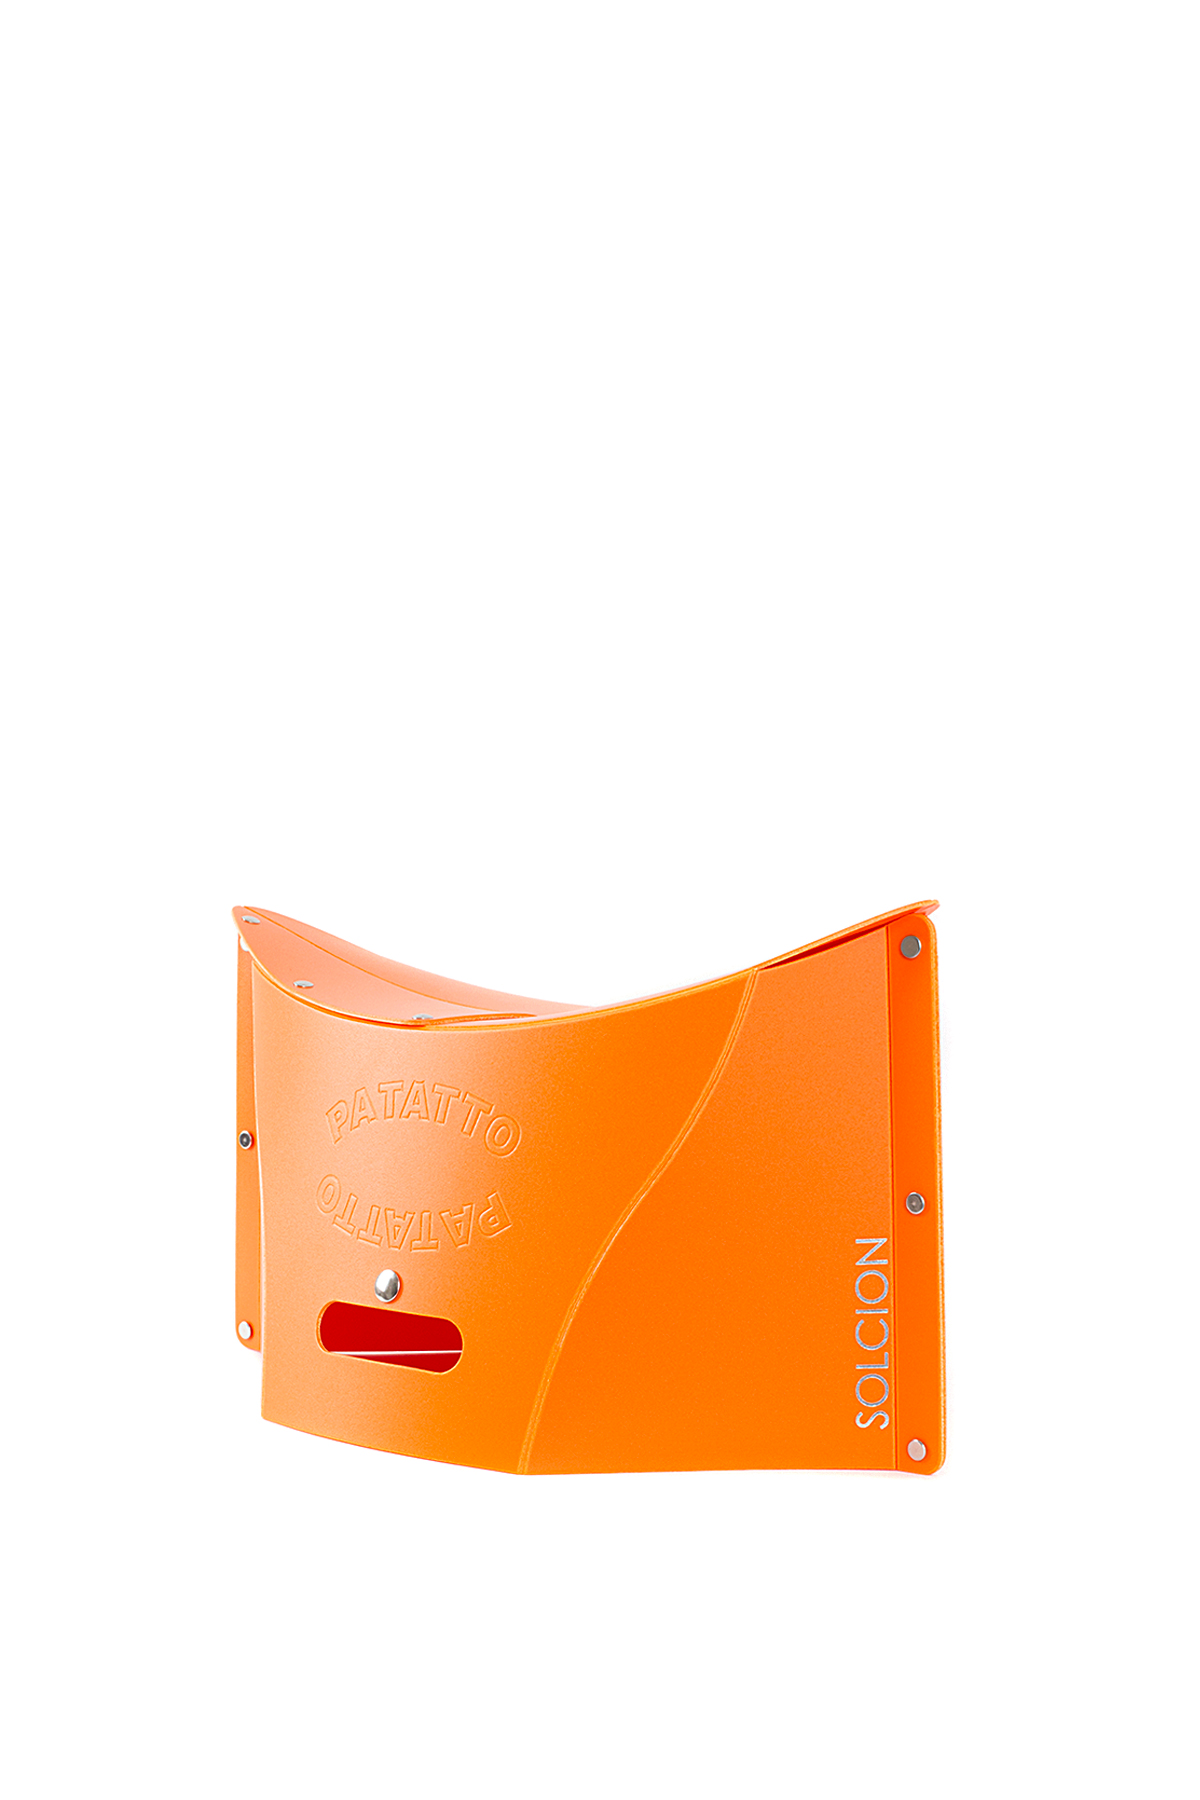 PATATTO : Comfortable Chair 200 (Orange)